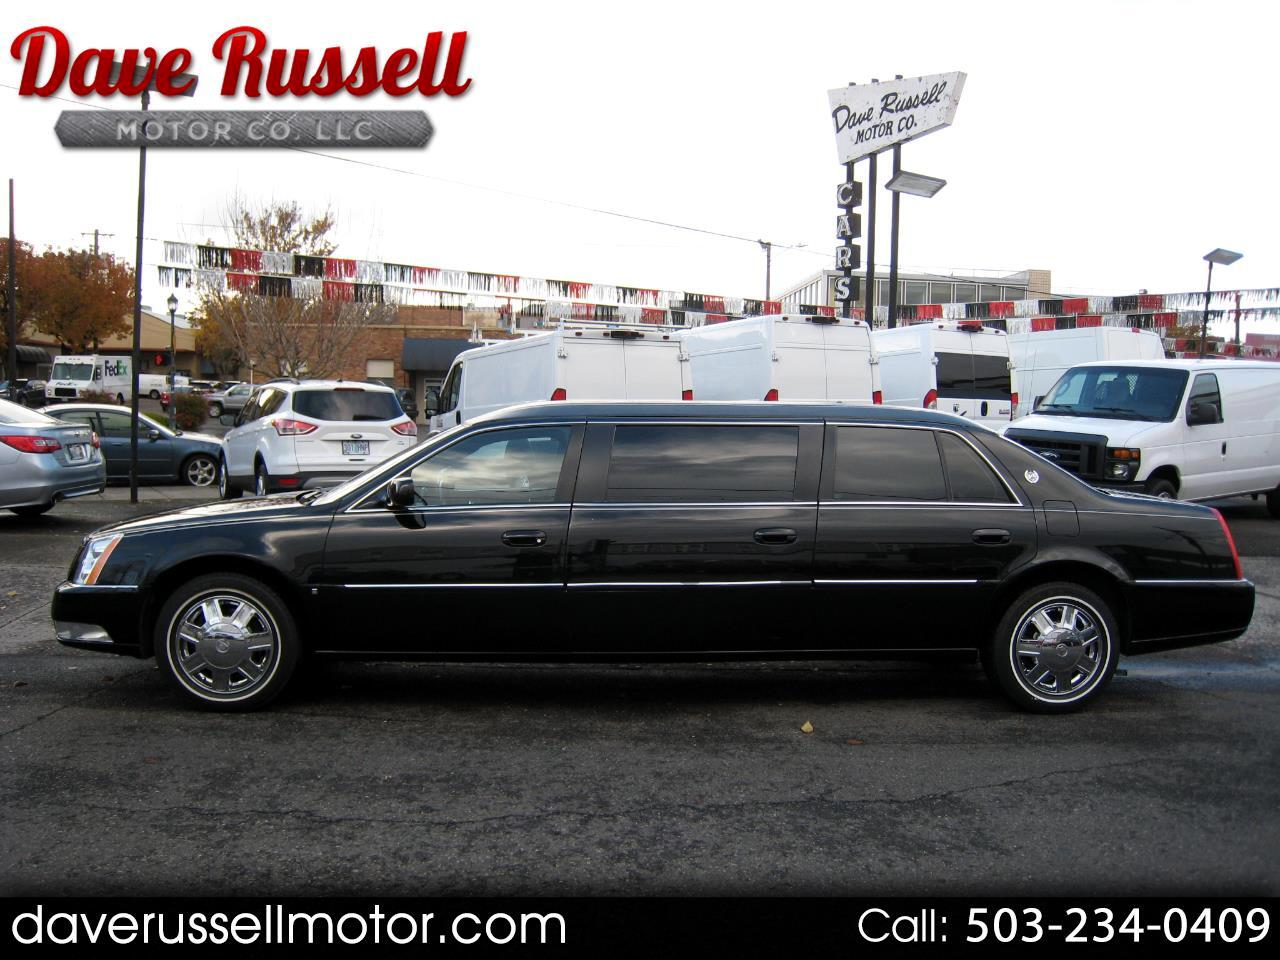 2006 Cadillac Krystal Koach DTS Professional Chassis S&S Coach Funeral Limo